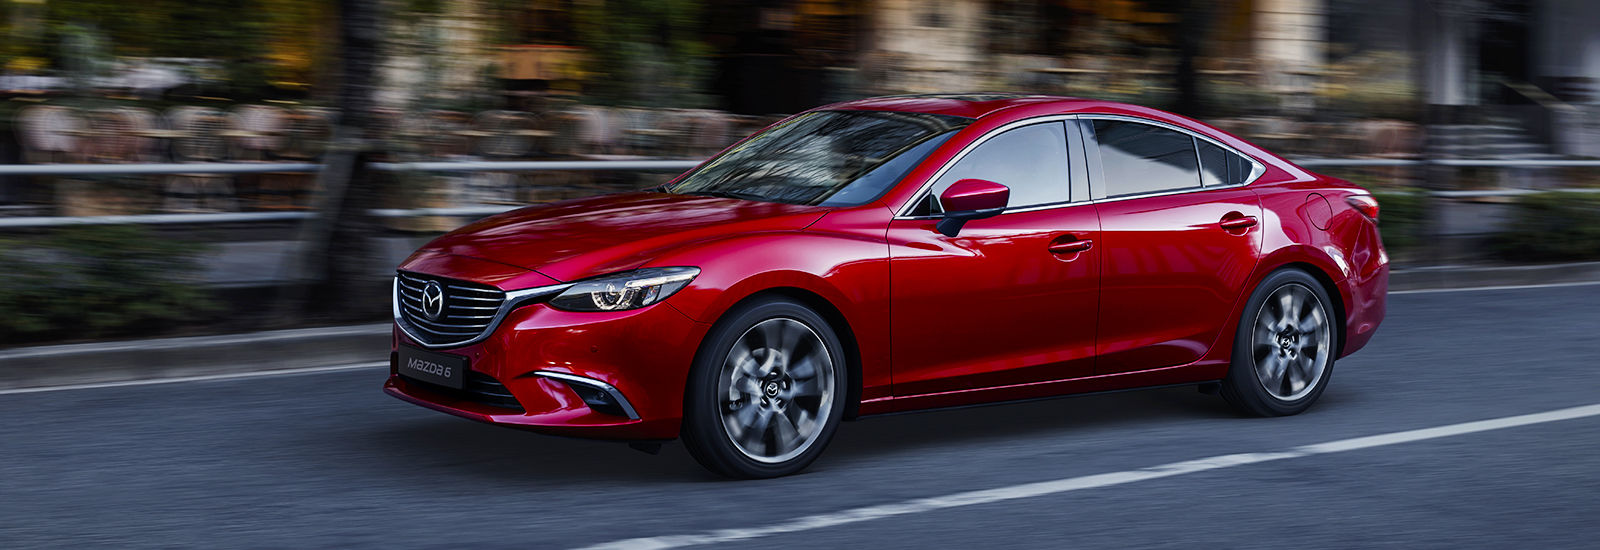 2017 Mazda 6 Facelift With Gvc Complete Guide Carwow